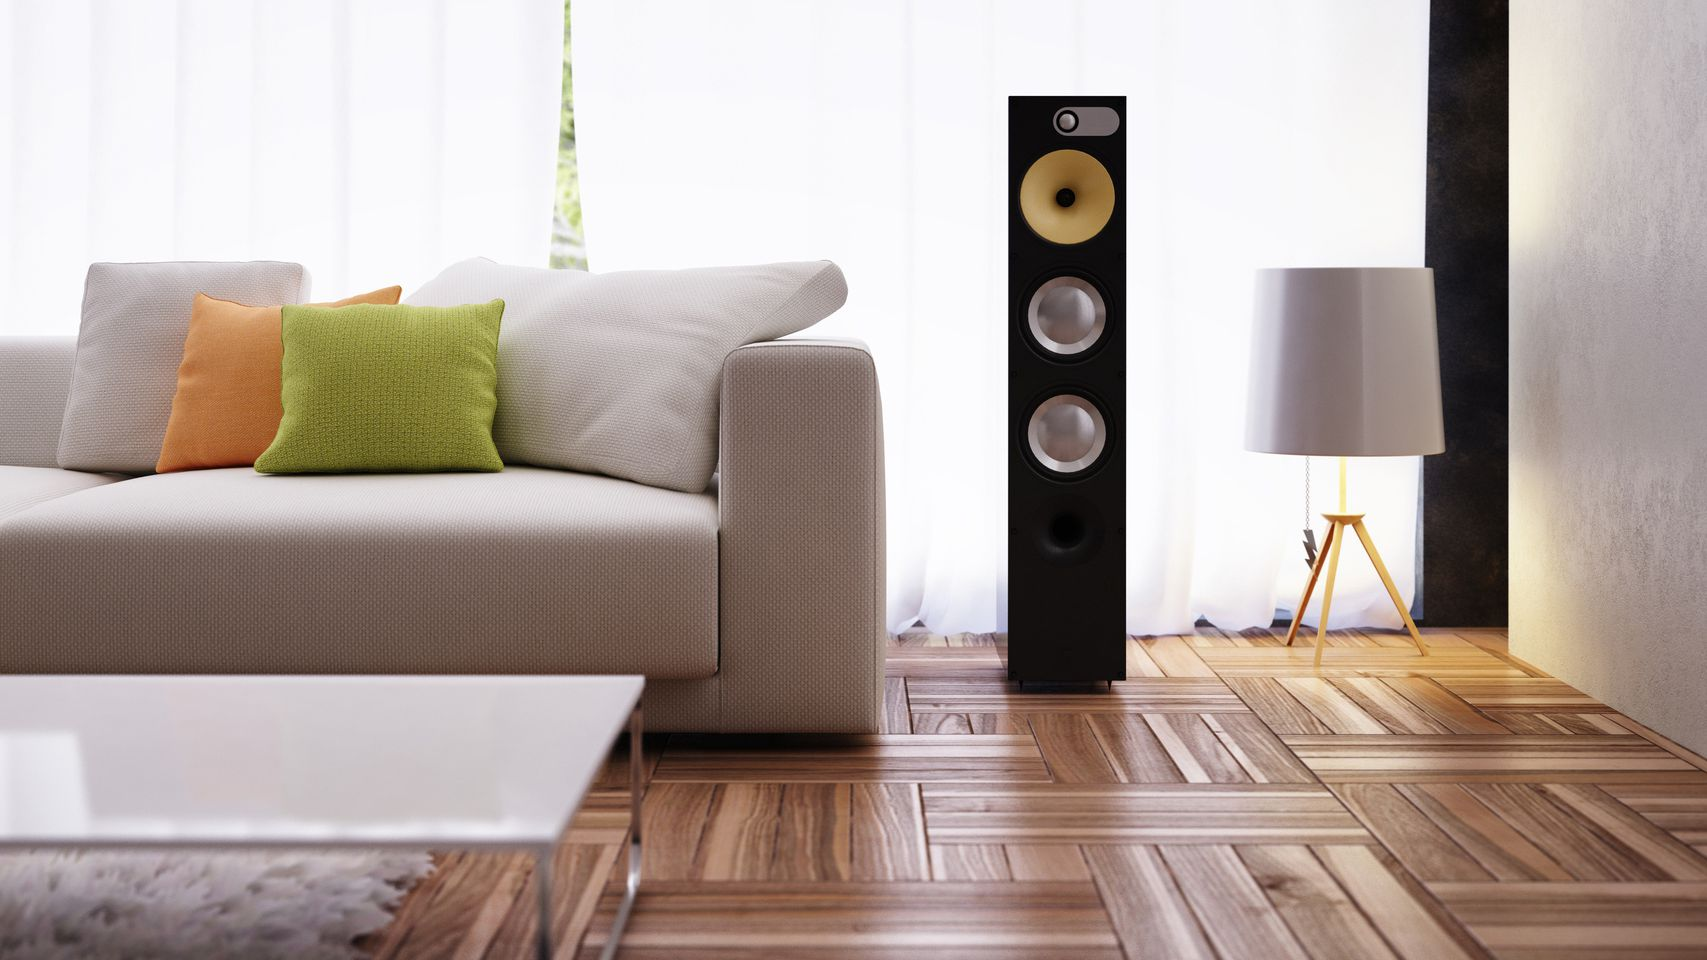 Steps to Fix a Speaker Channel That Isn't Working